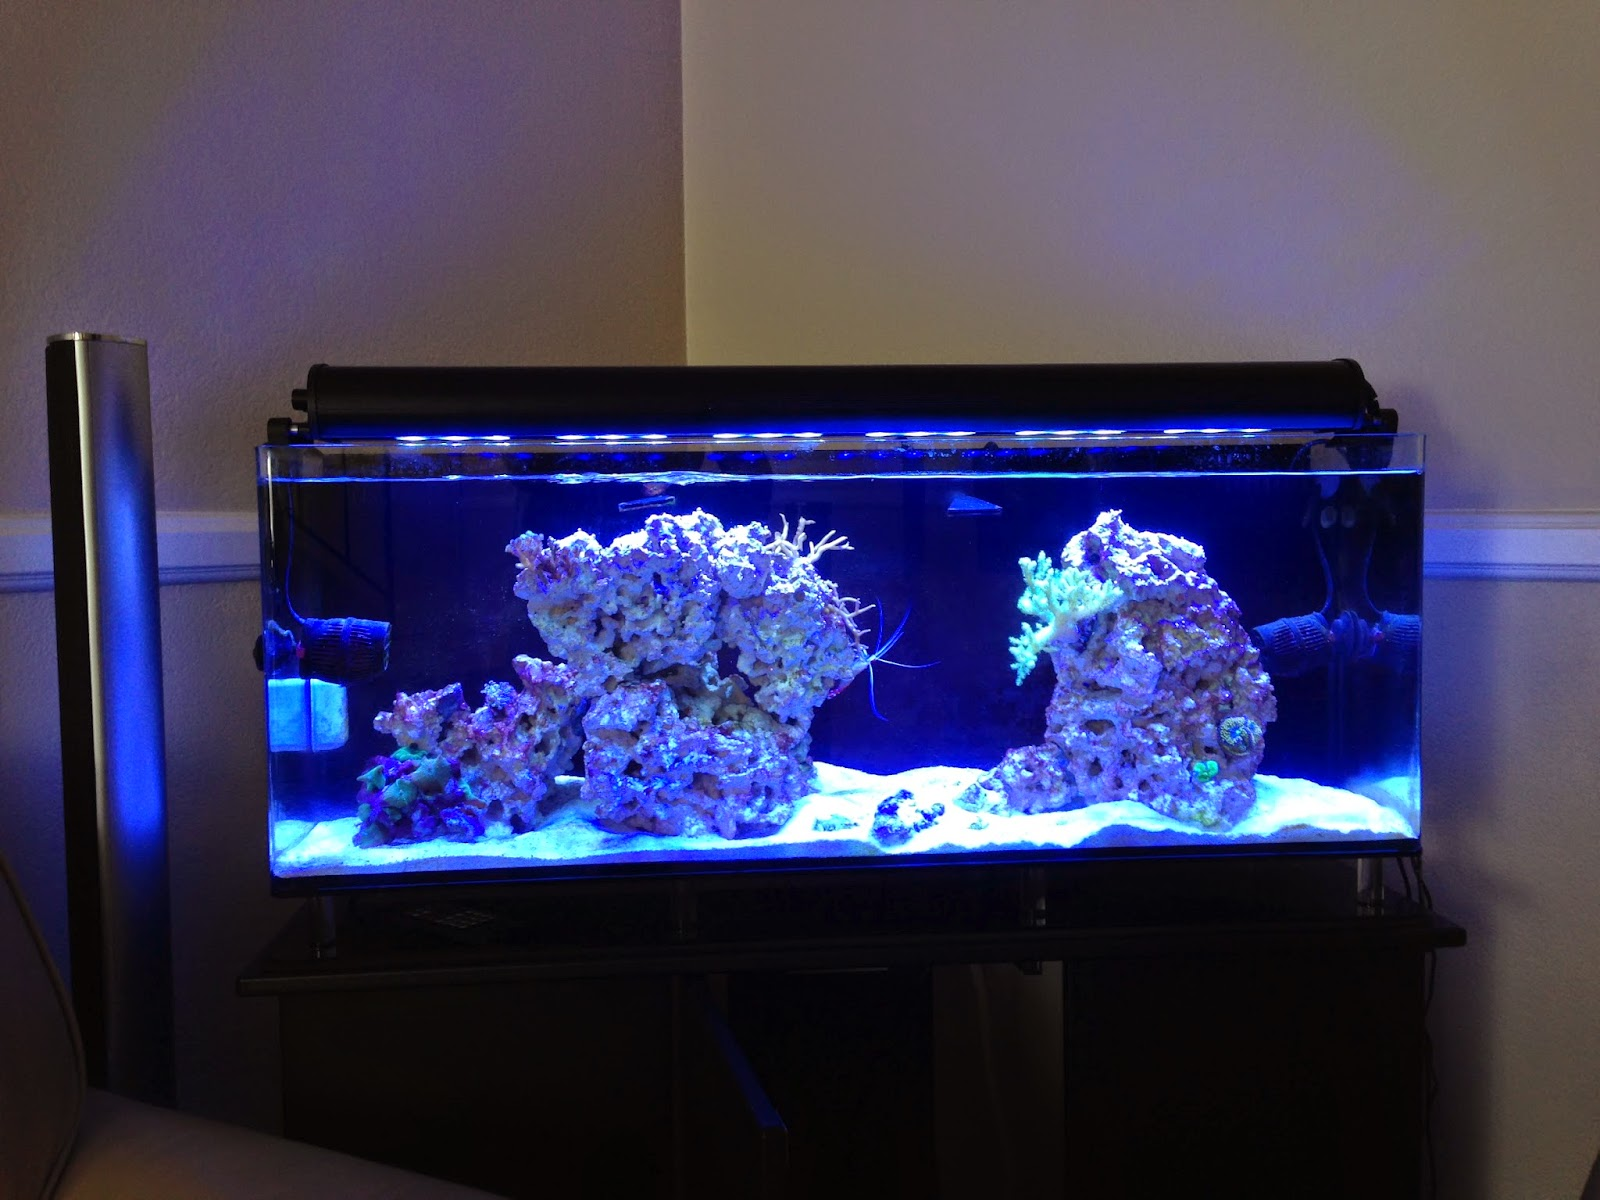 Saltwater aquarium - My First Saltwater Aquarium At Home Part 3 Going On Vacation